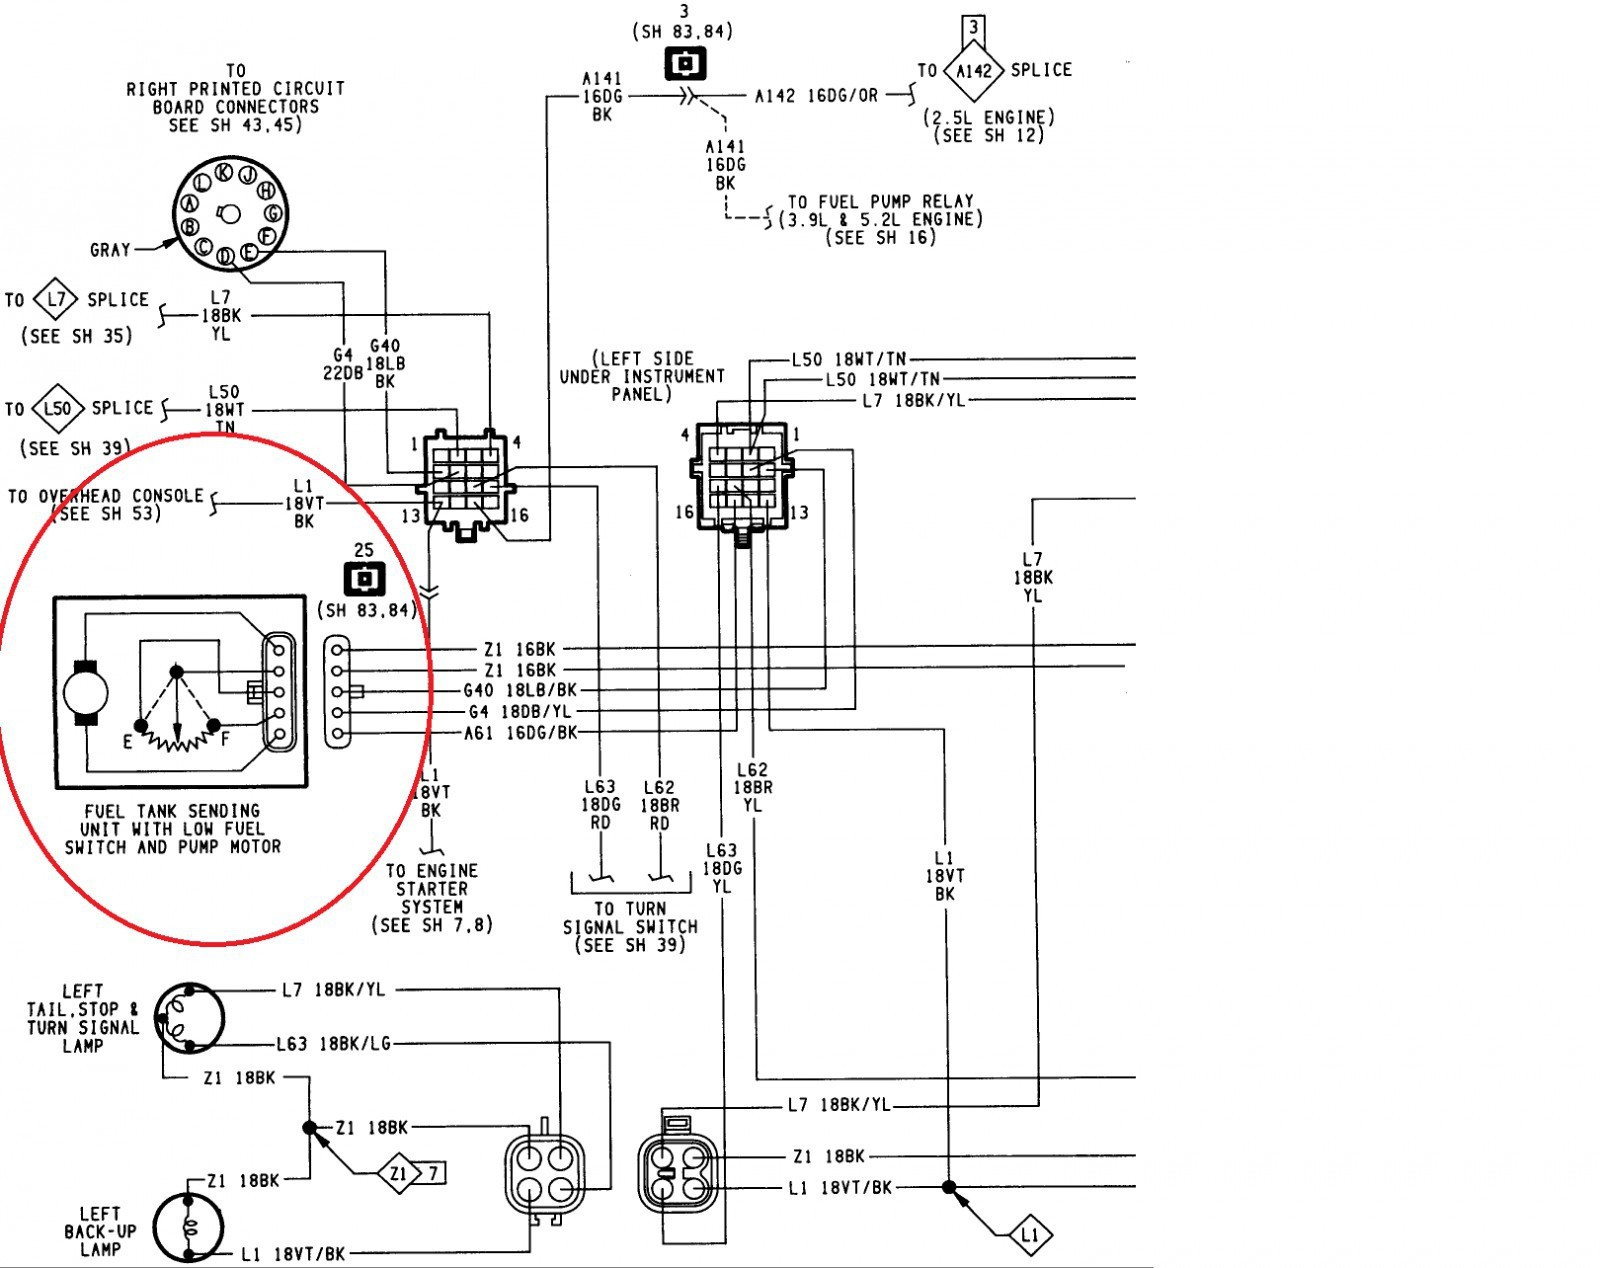 Fuel Gauge Wiring Diagram For Vw Trike Just Wirings Diagrams Specifications Wire Center U2022 Rh 207 246 102 26 Kit Car Alternator